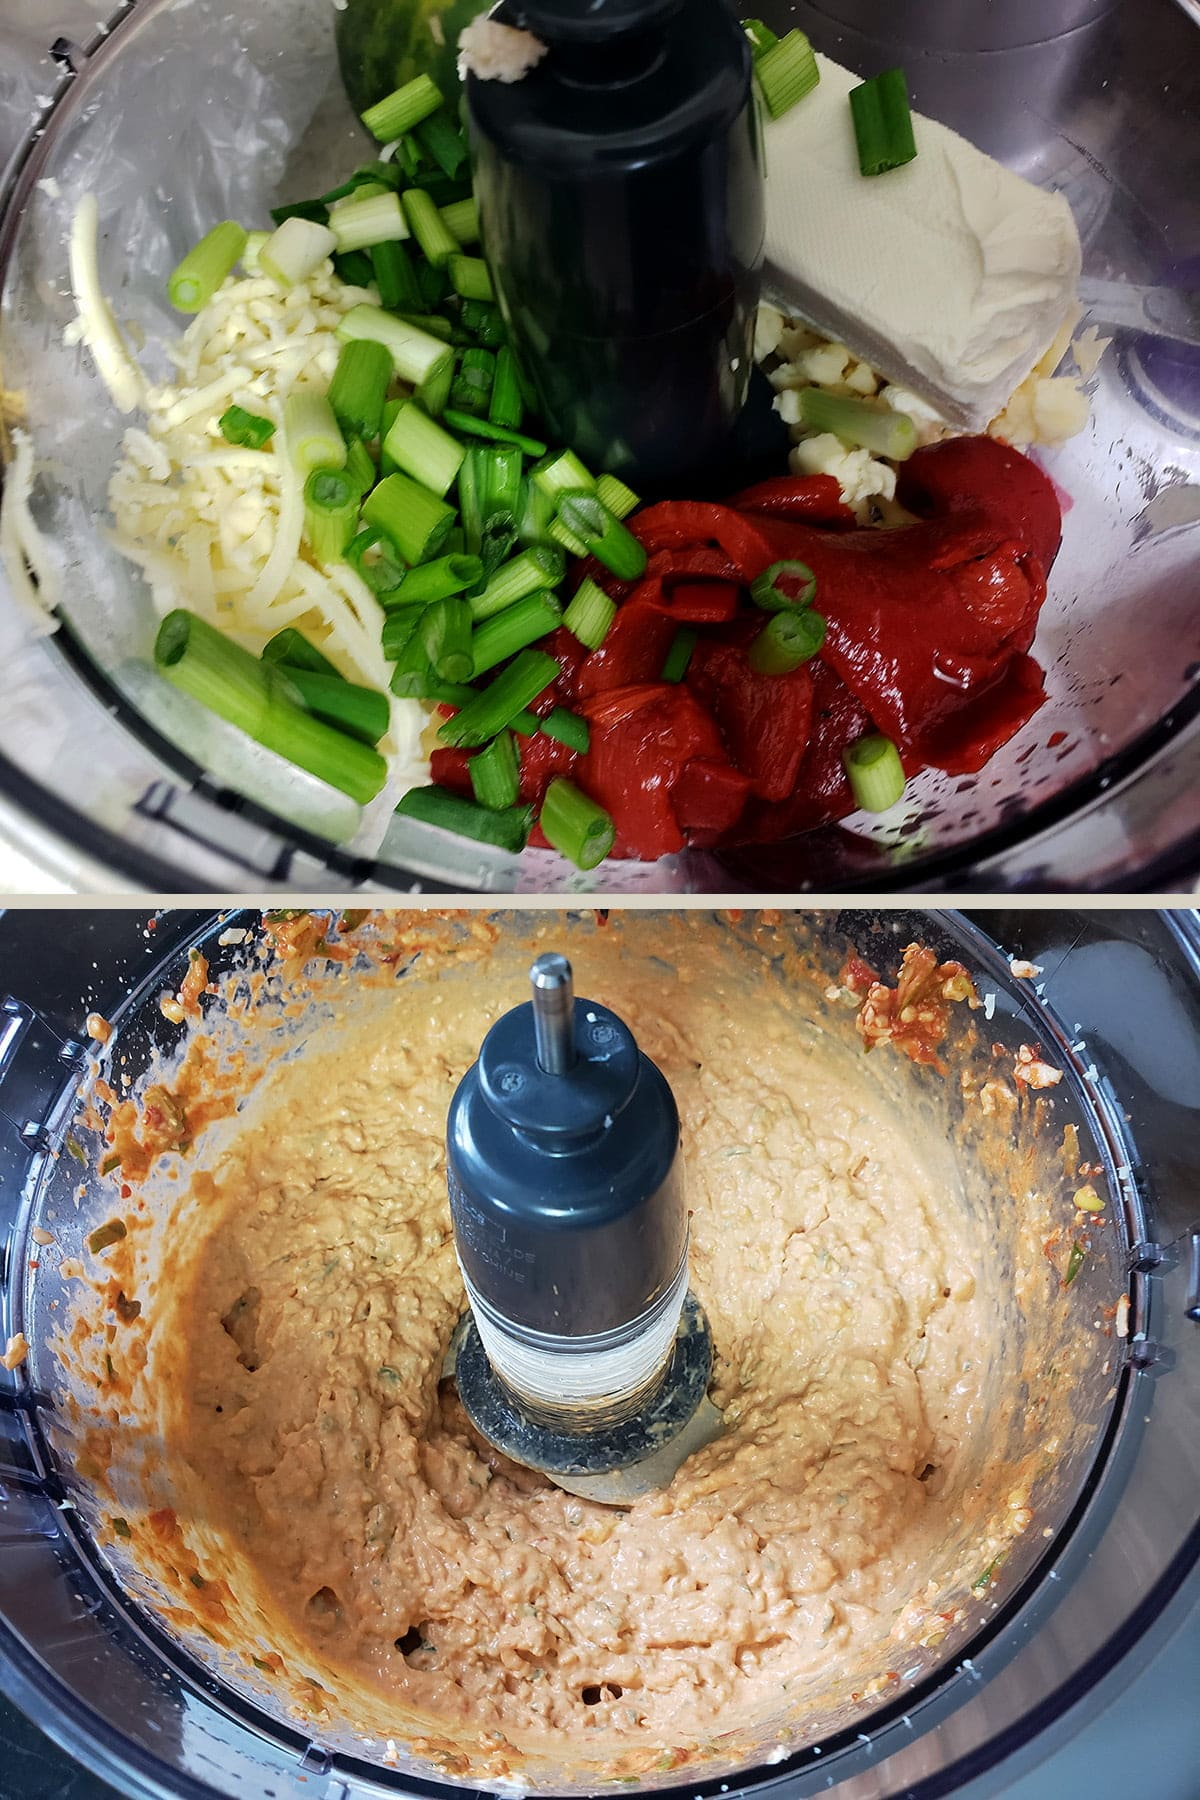 A two photo compilation image. On the top, distinct ingredients are shown in a small food processor. One the bottom, the ingredients have been blended together to form a reddish mixture.